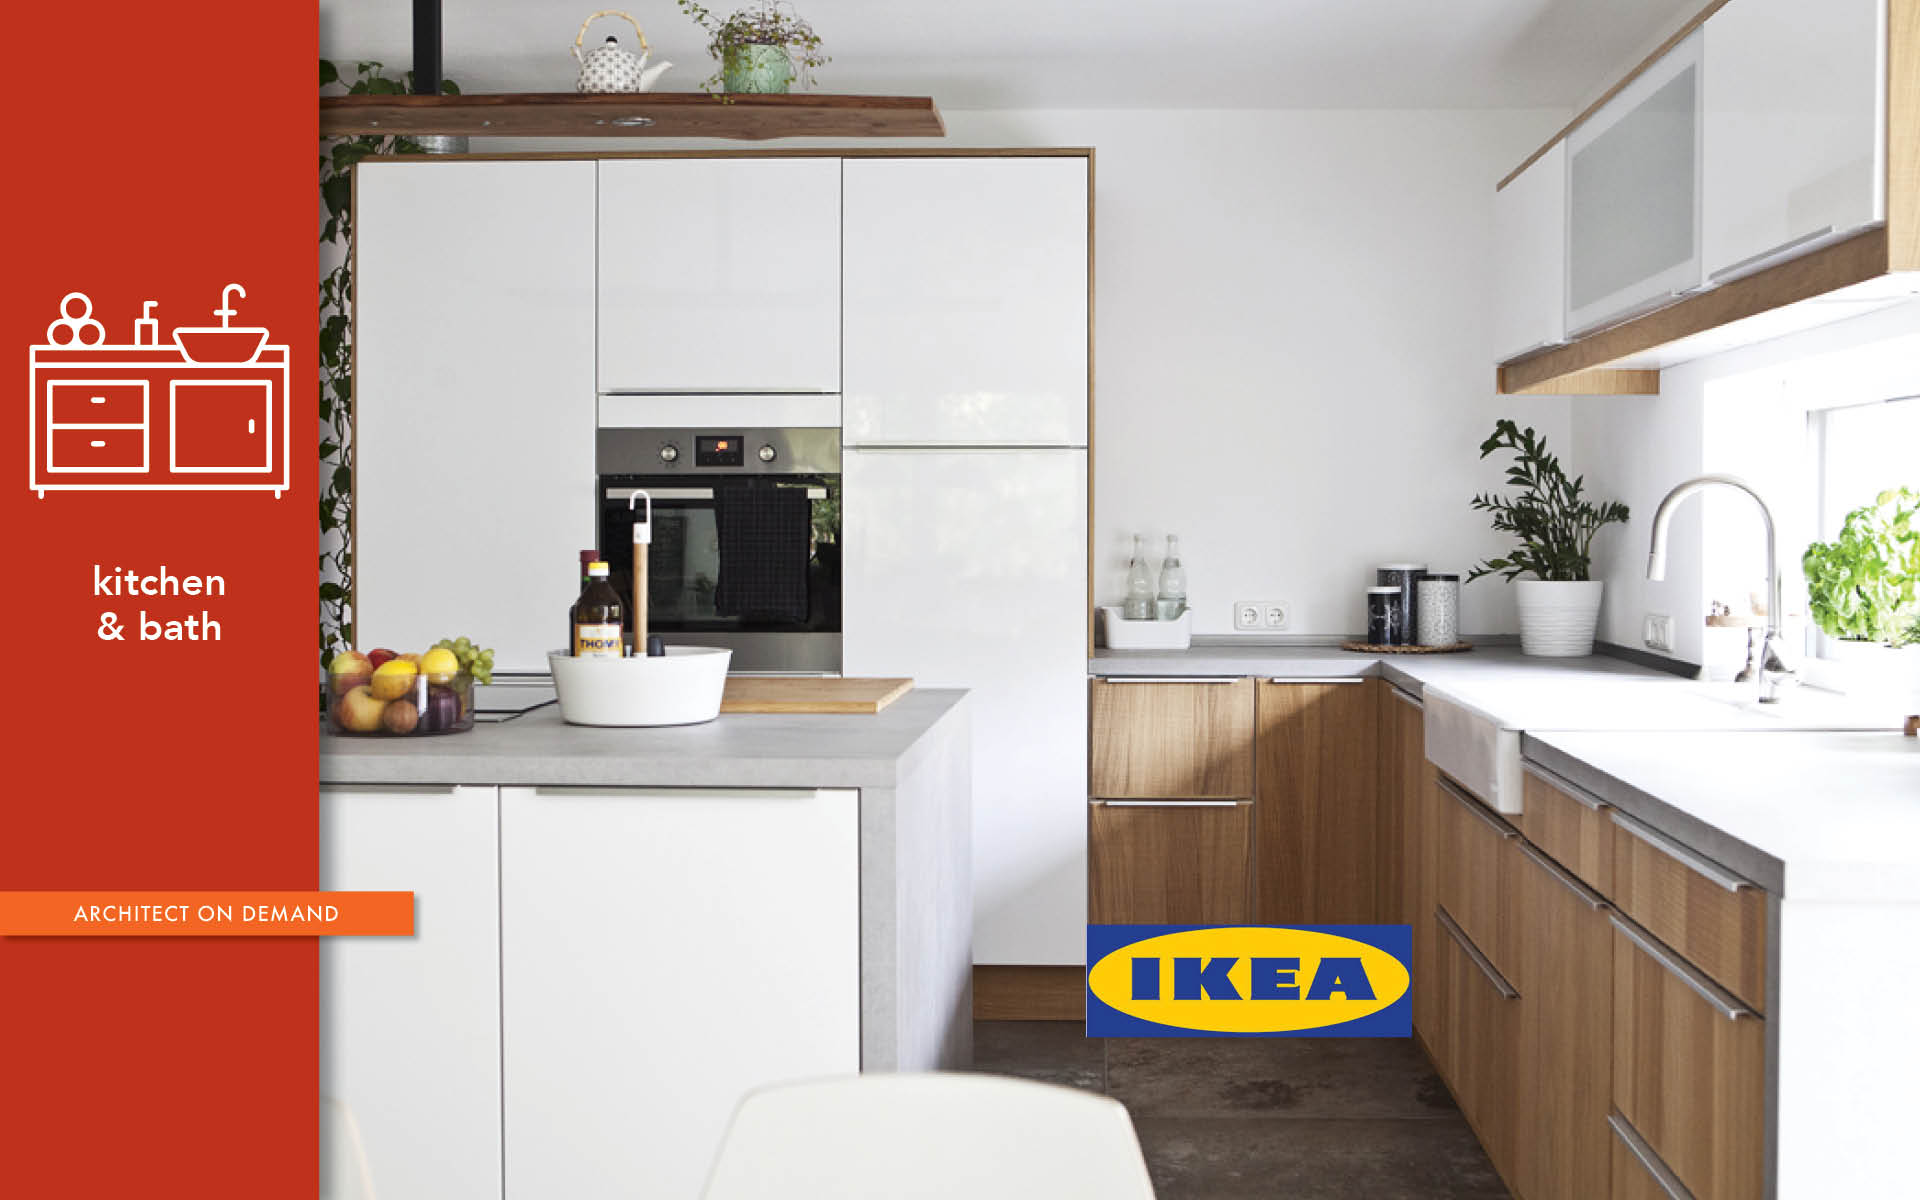 creative process, custom-built, IKEA, kitchen, architect-on-demand, advice-without-strings